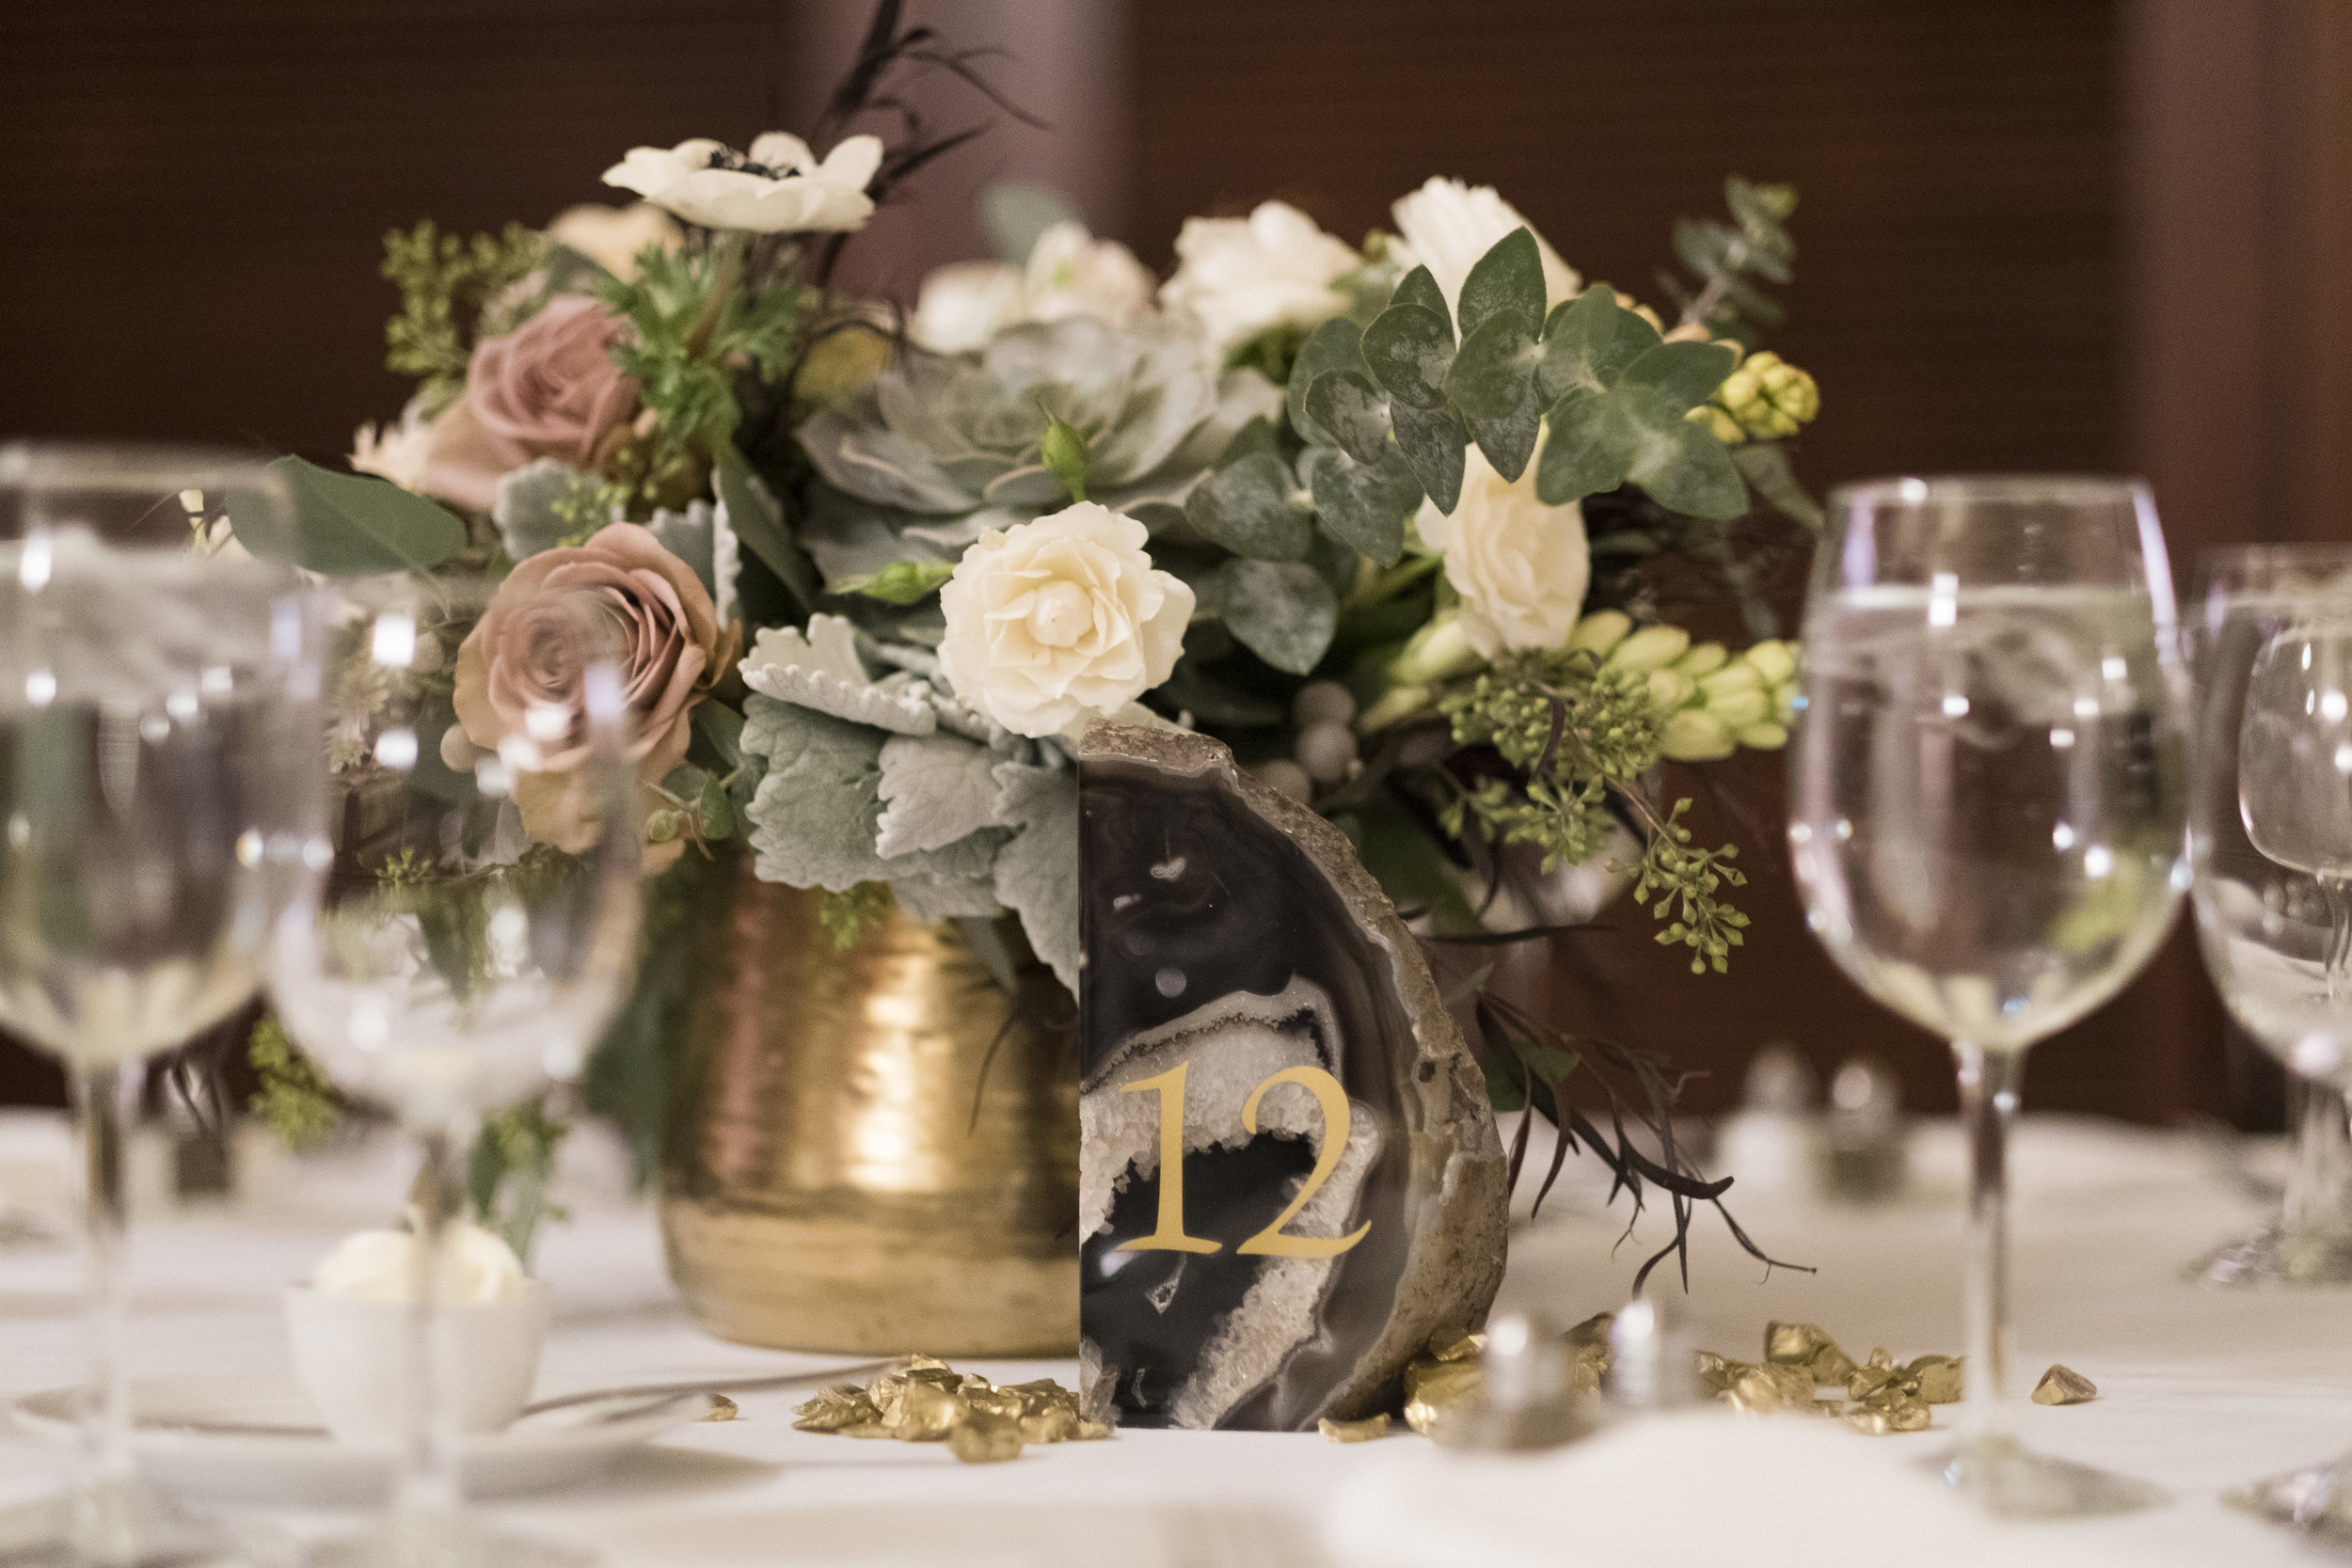 The bride had a clear vision for the elegant decor using crystals, agate, and mixed metals to create an opulent yet warm atmosphere.